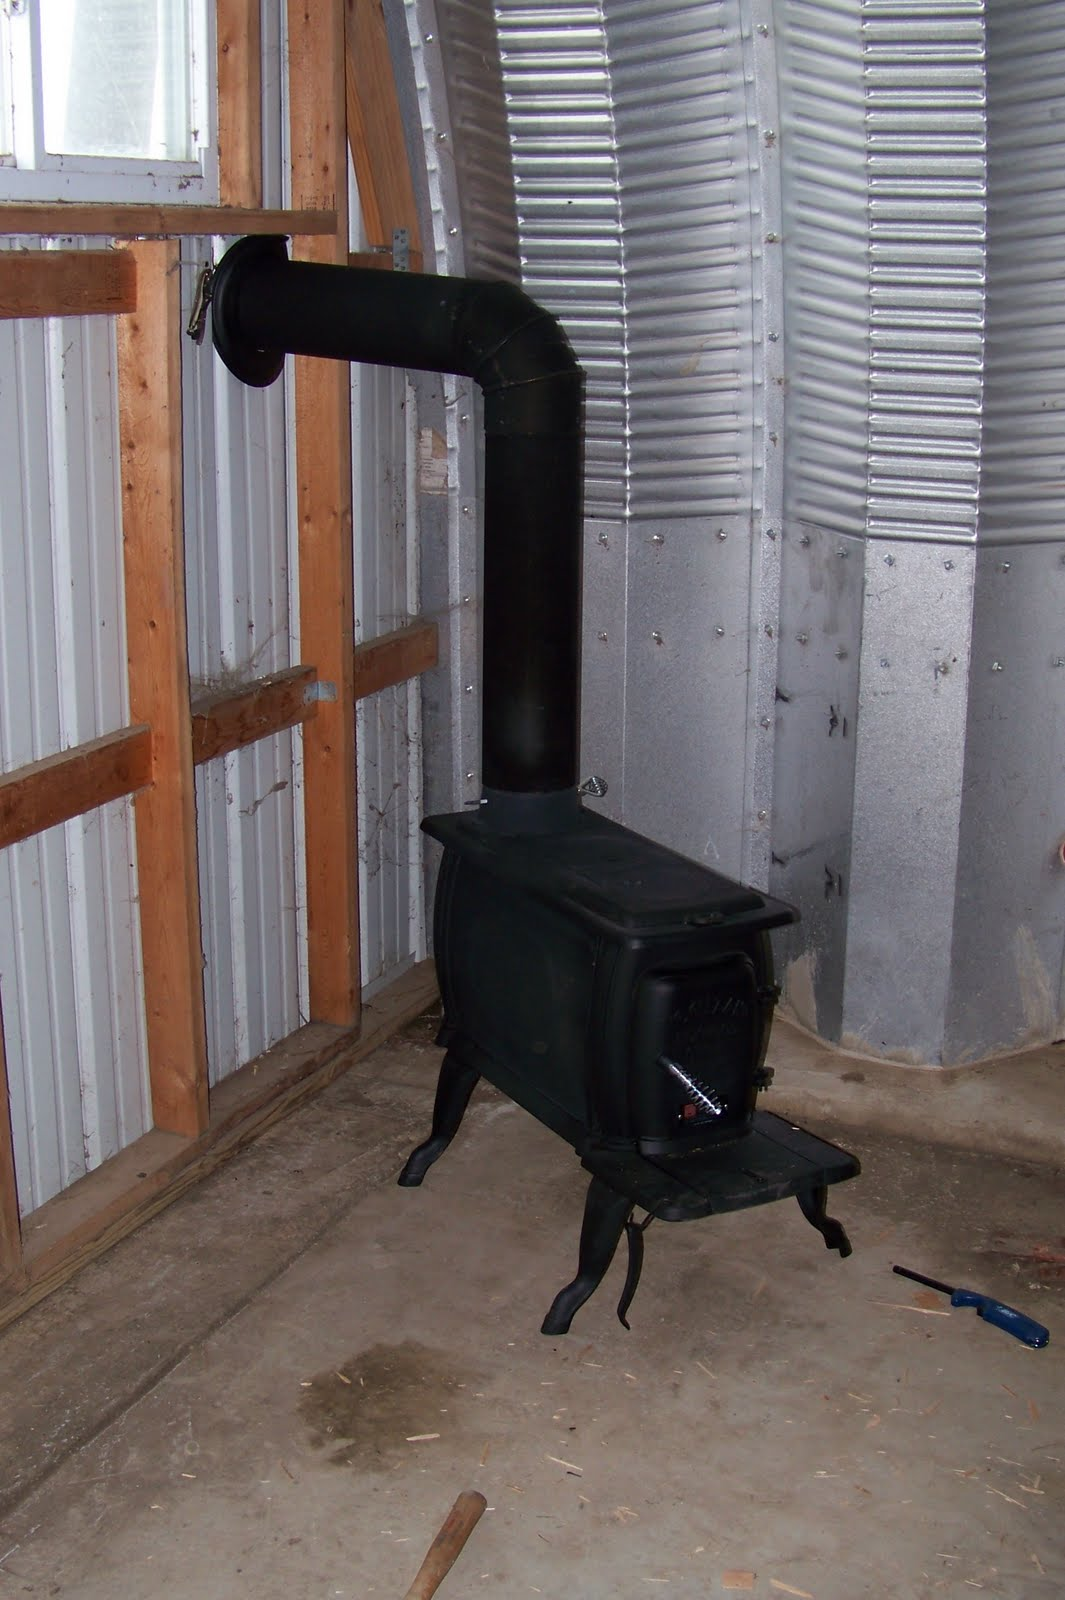 Small Wood Stove For Shed WB Designs - Small Wood Stove For Shed WB Designs